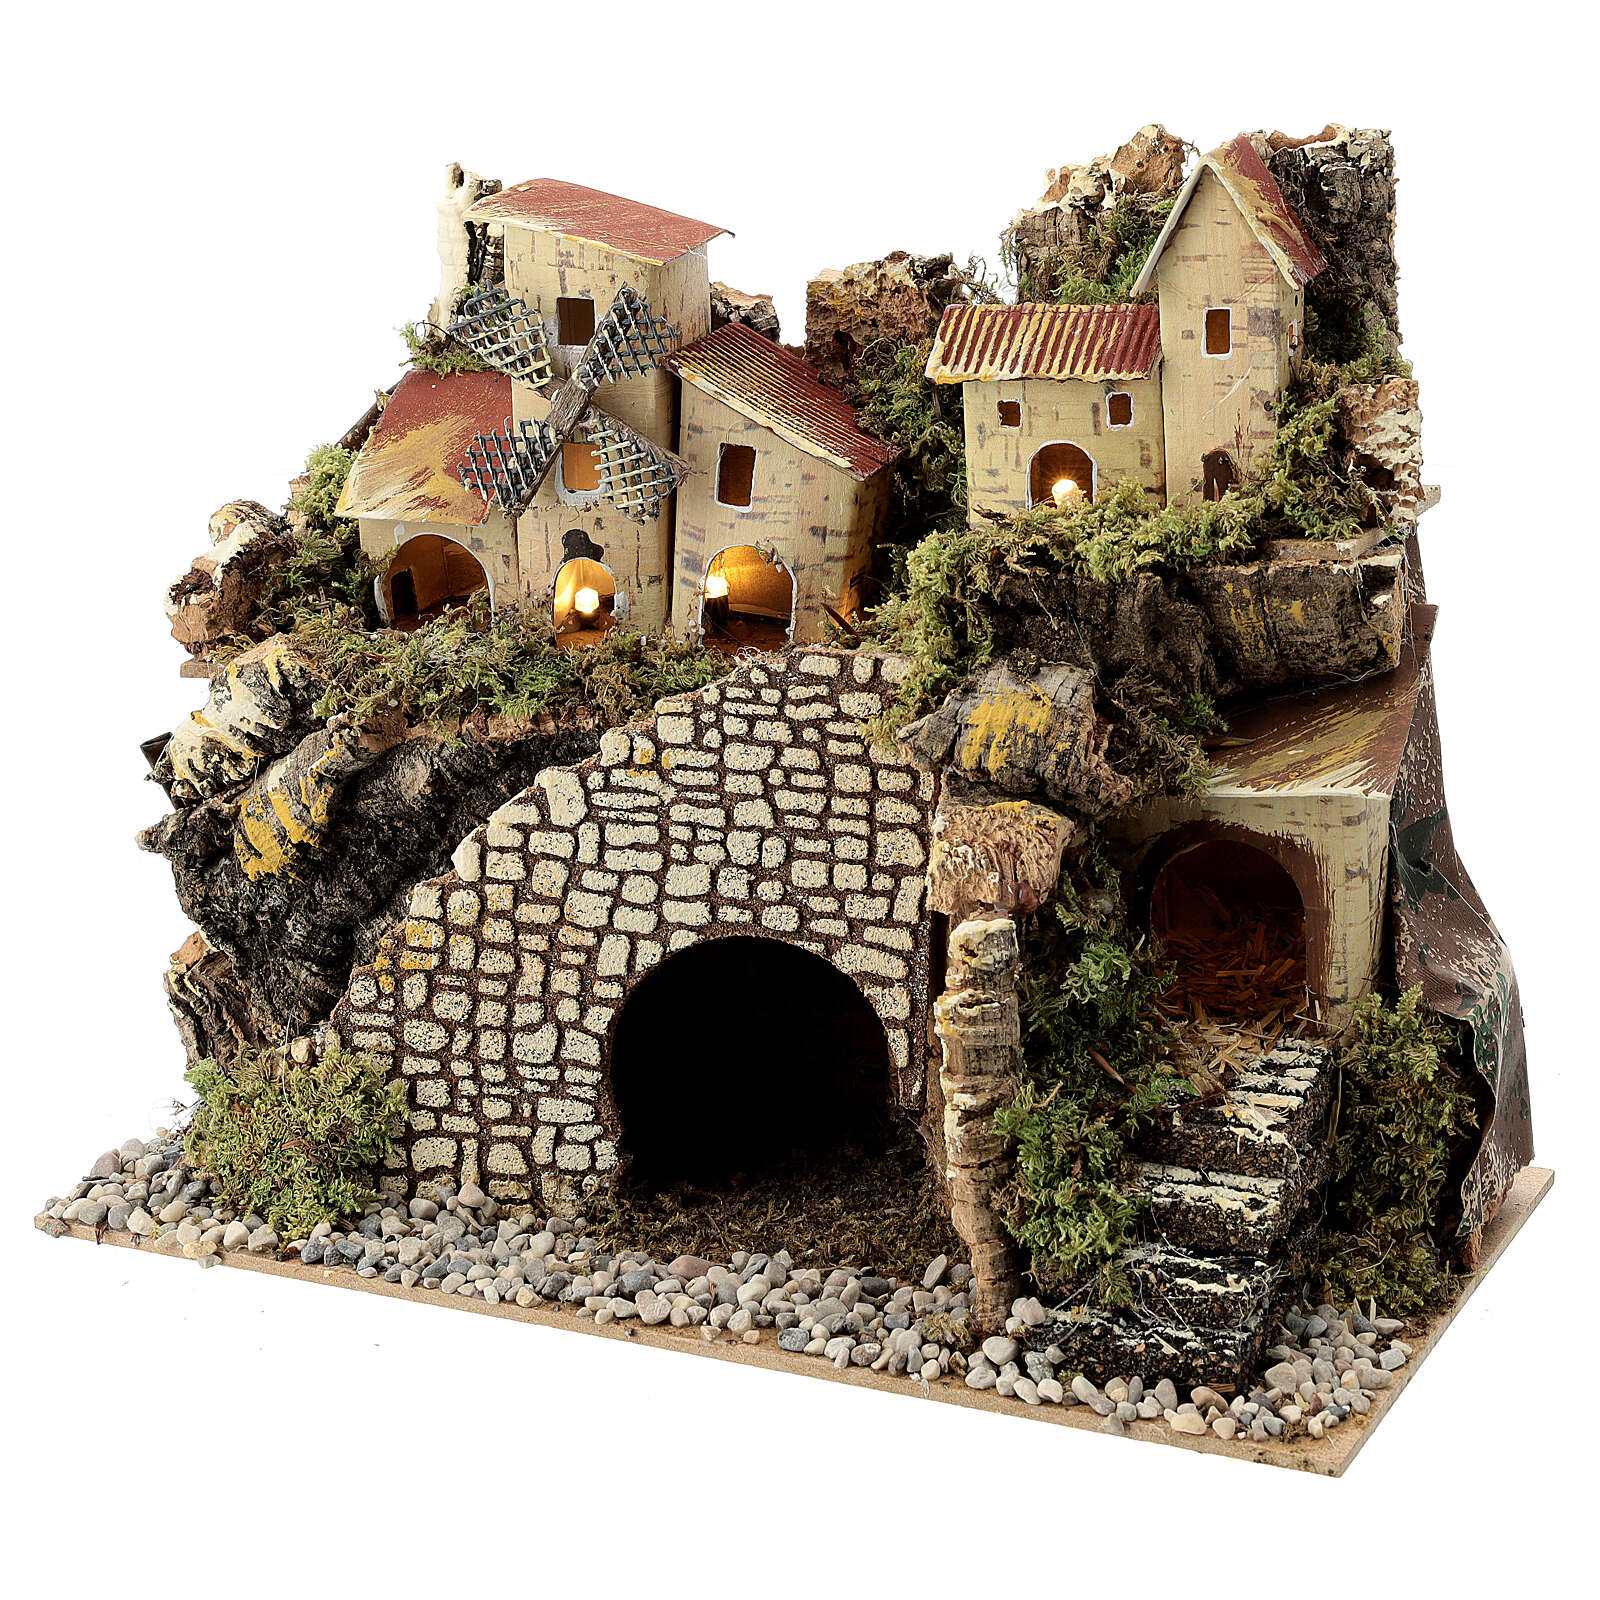 Village with staircase and mill 20X15X30 cm, nativity set 8 cm 4